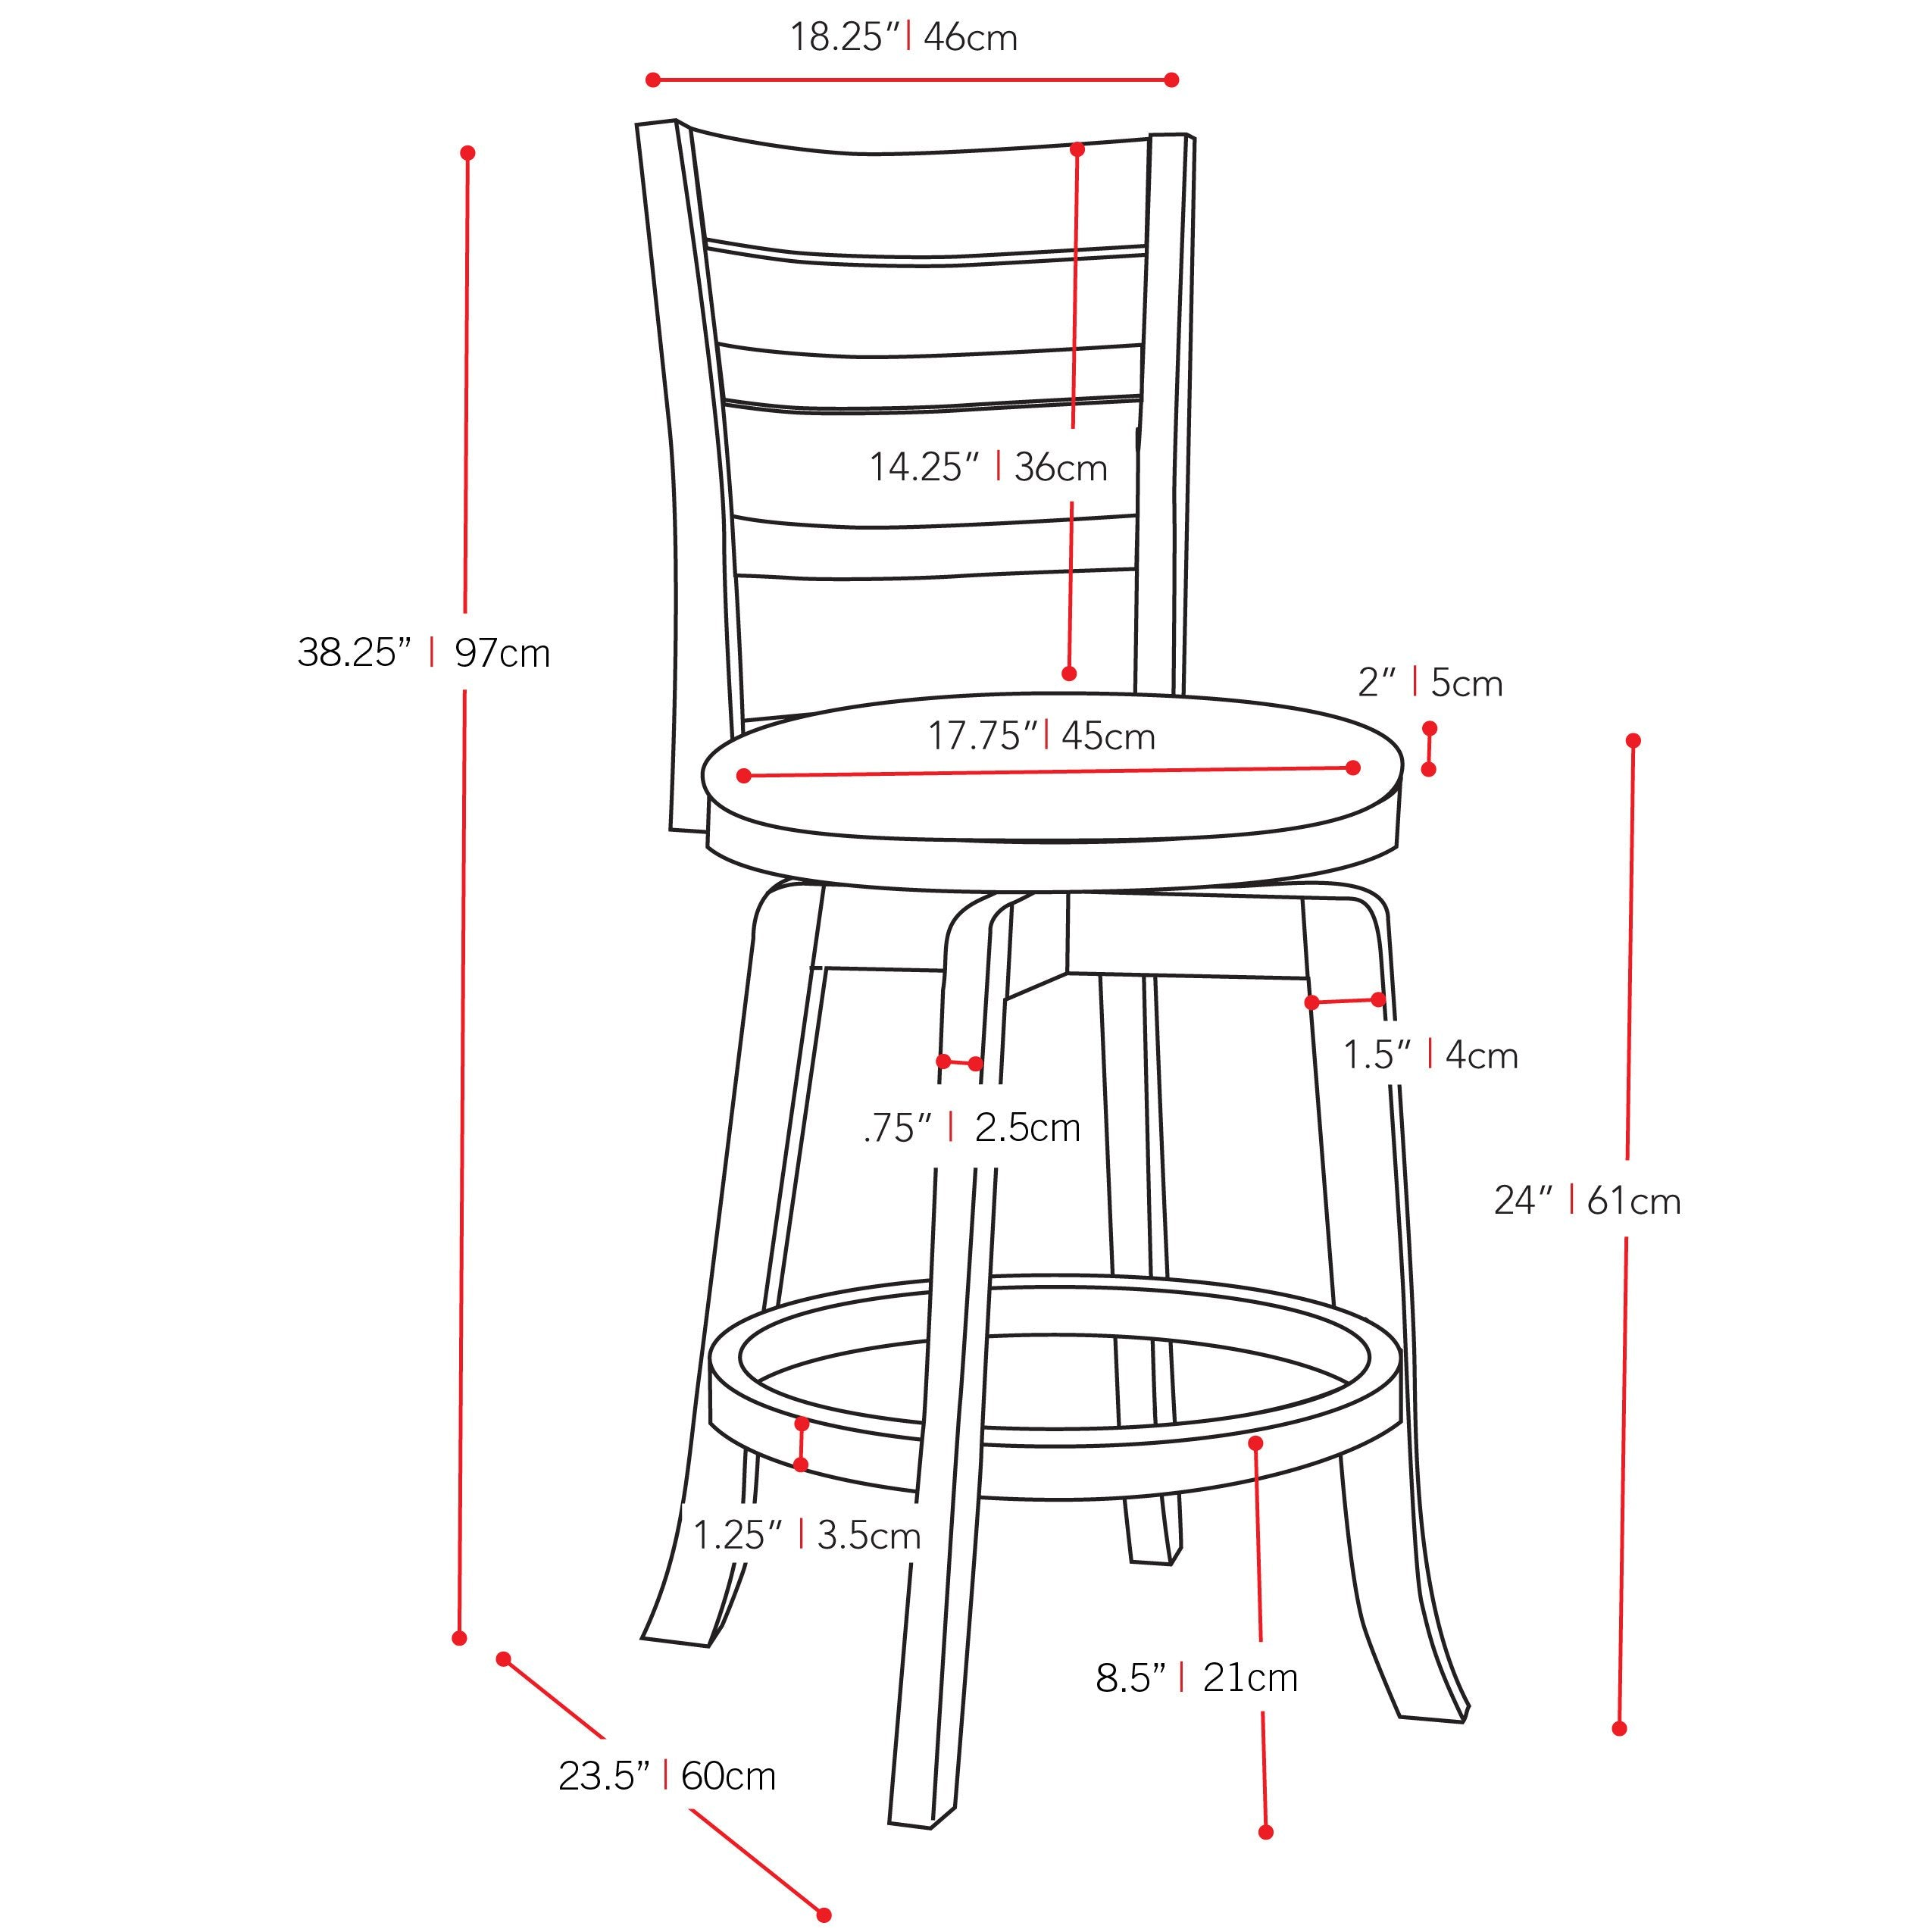 Wondrous Wood Counter Height Bar Stool With White Leatherette Seat And 3 Slat Backrest Bralicious Painted Fabric Chair Ideas Braliciousco